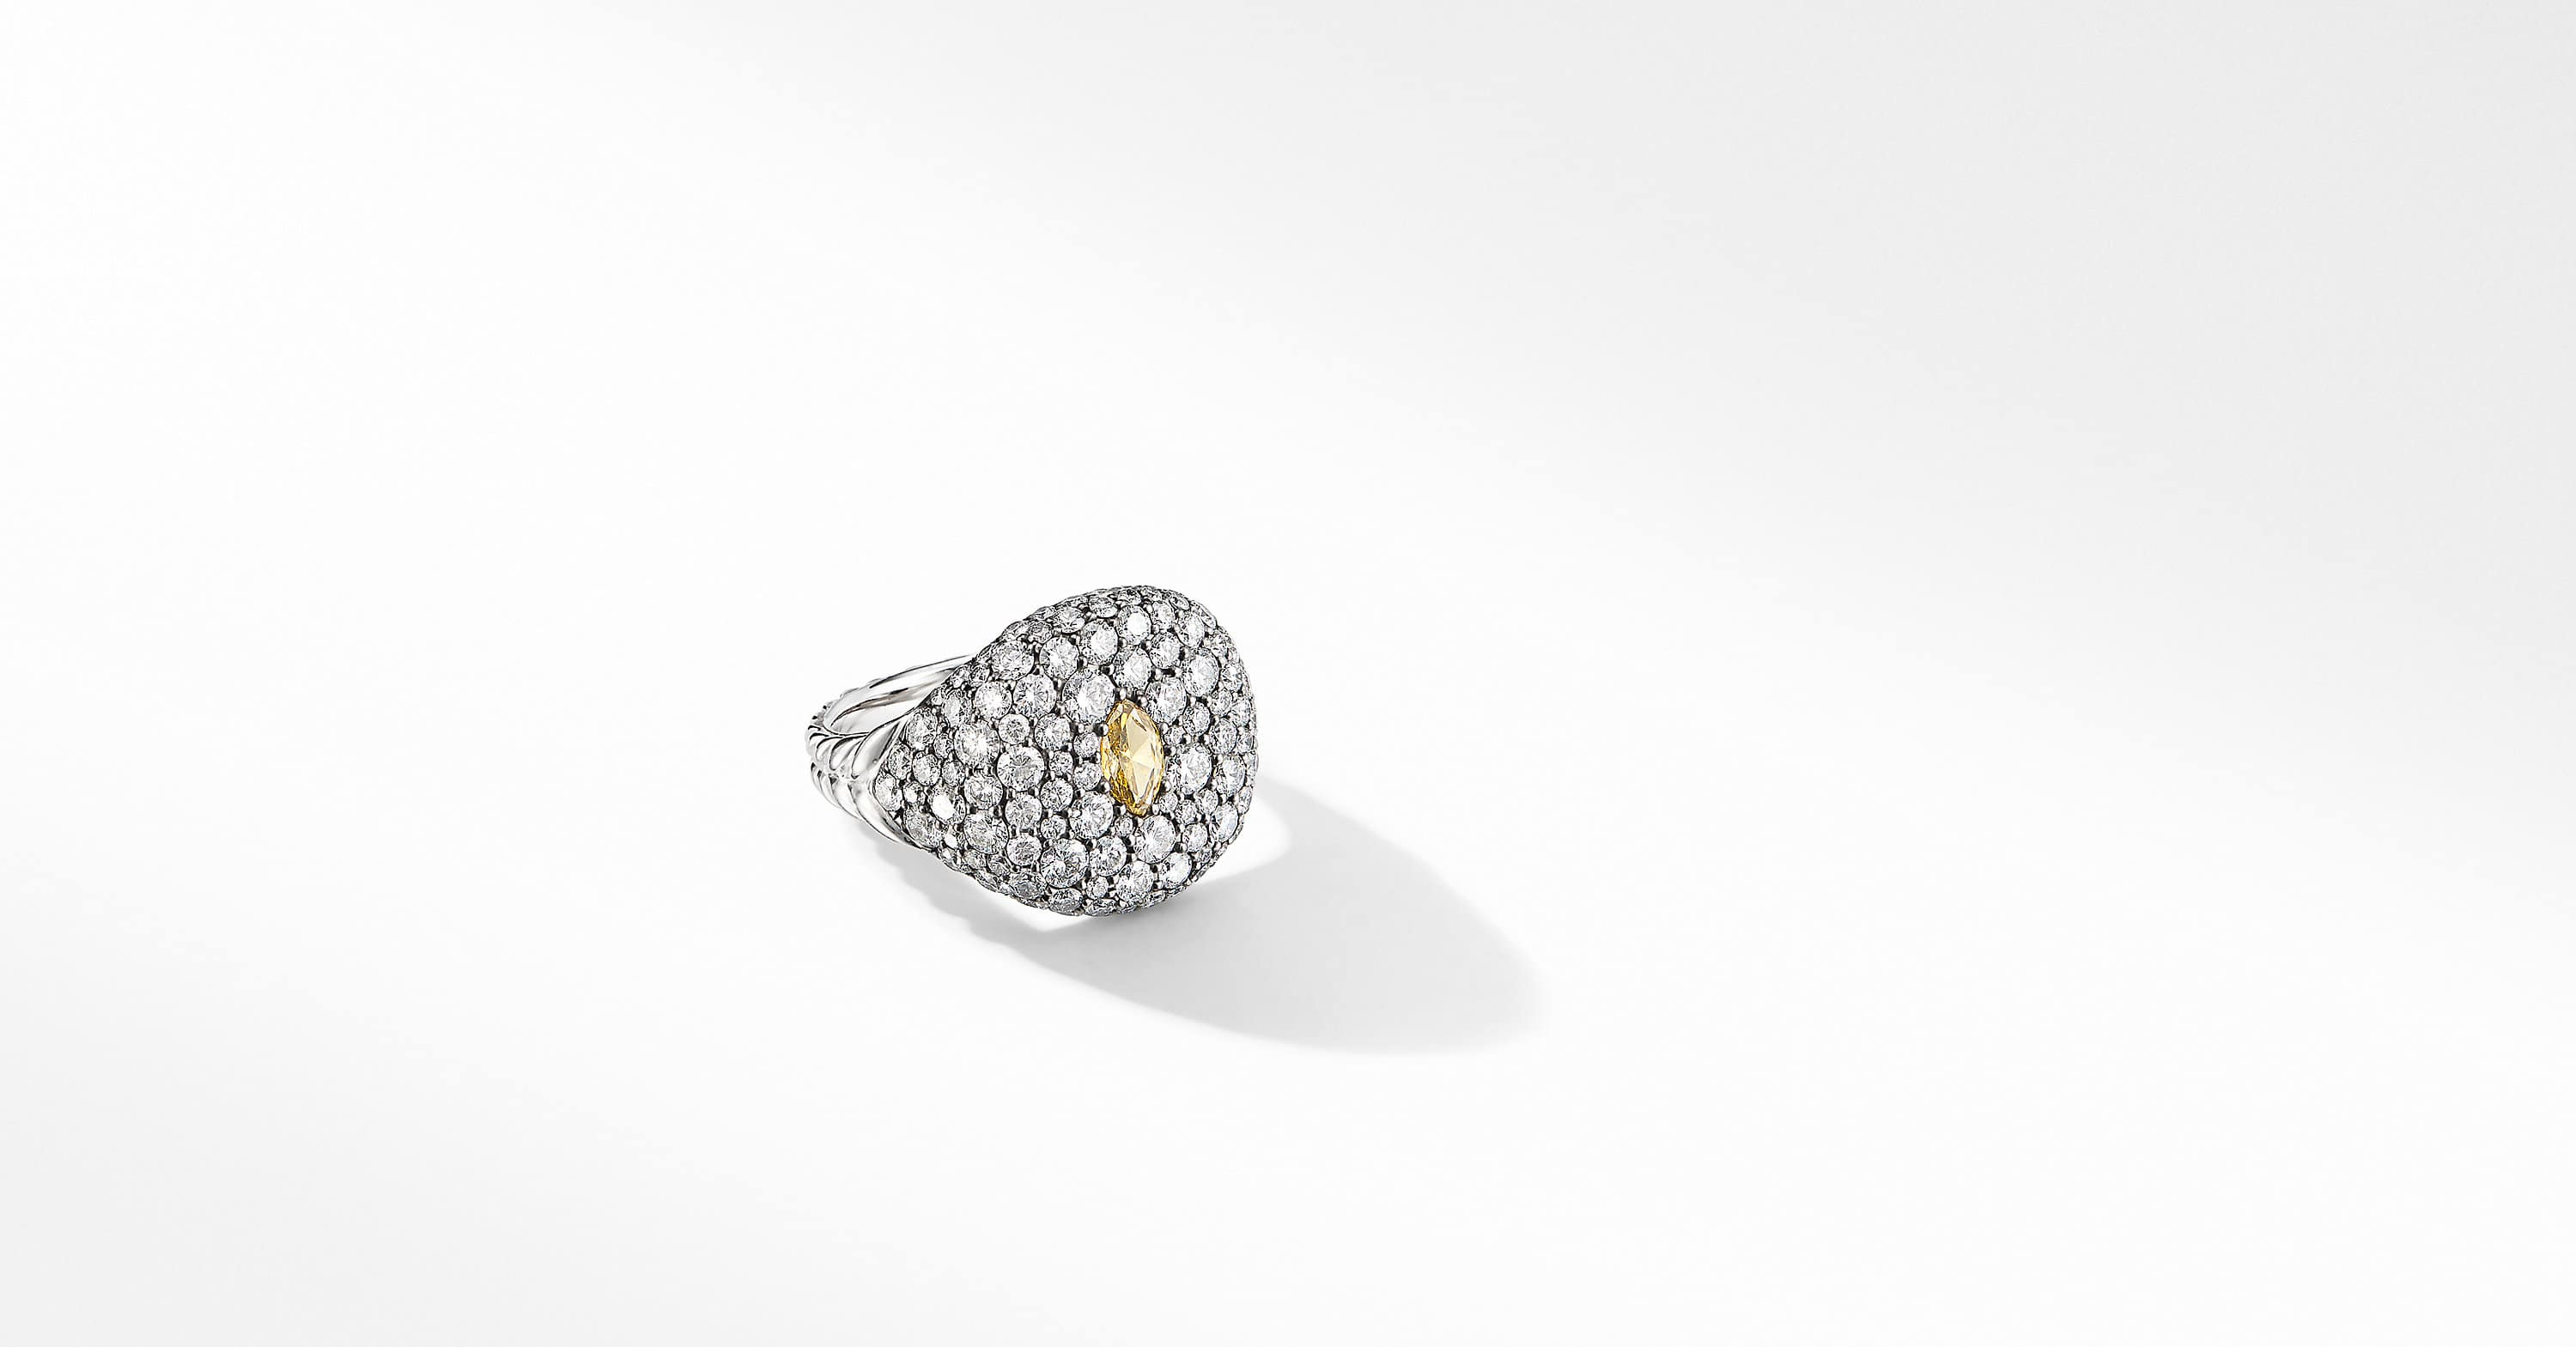 Pavé Pinky Ring in 18K White Gold with a Yellow Diamond